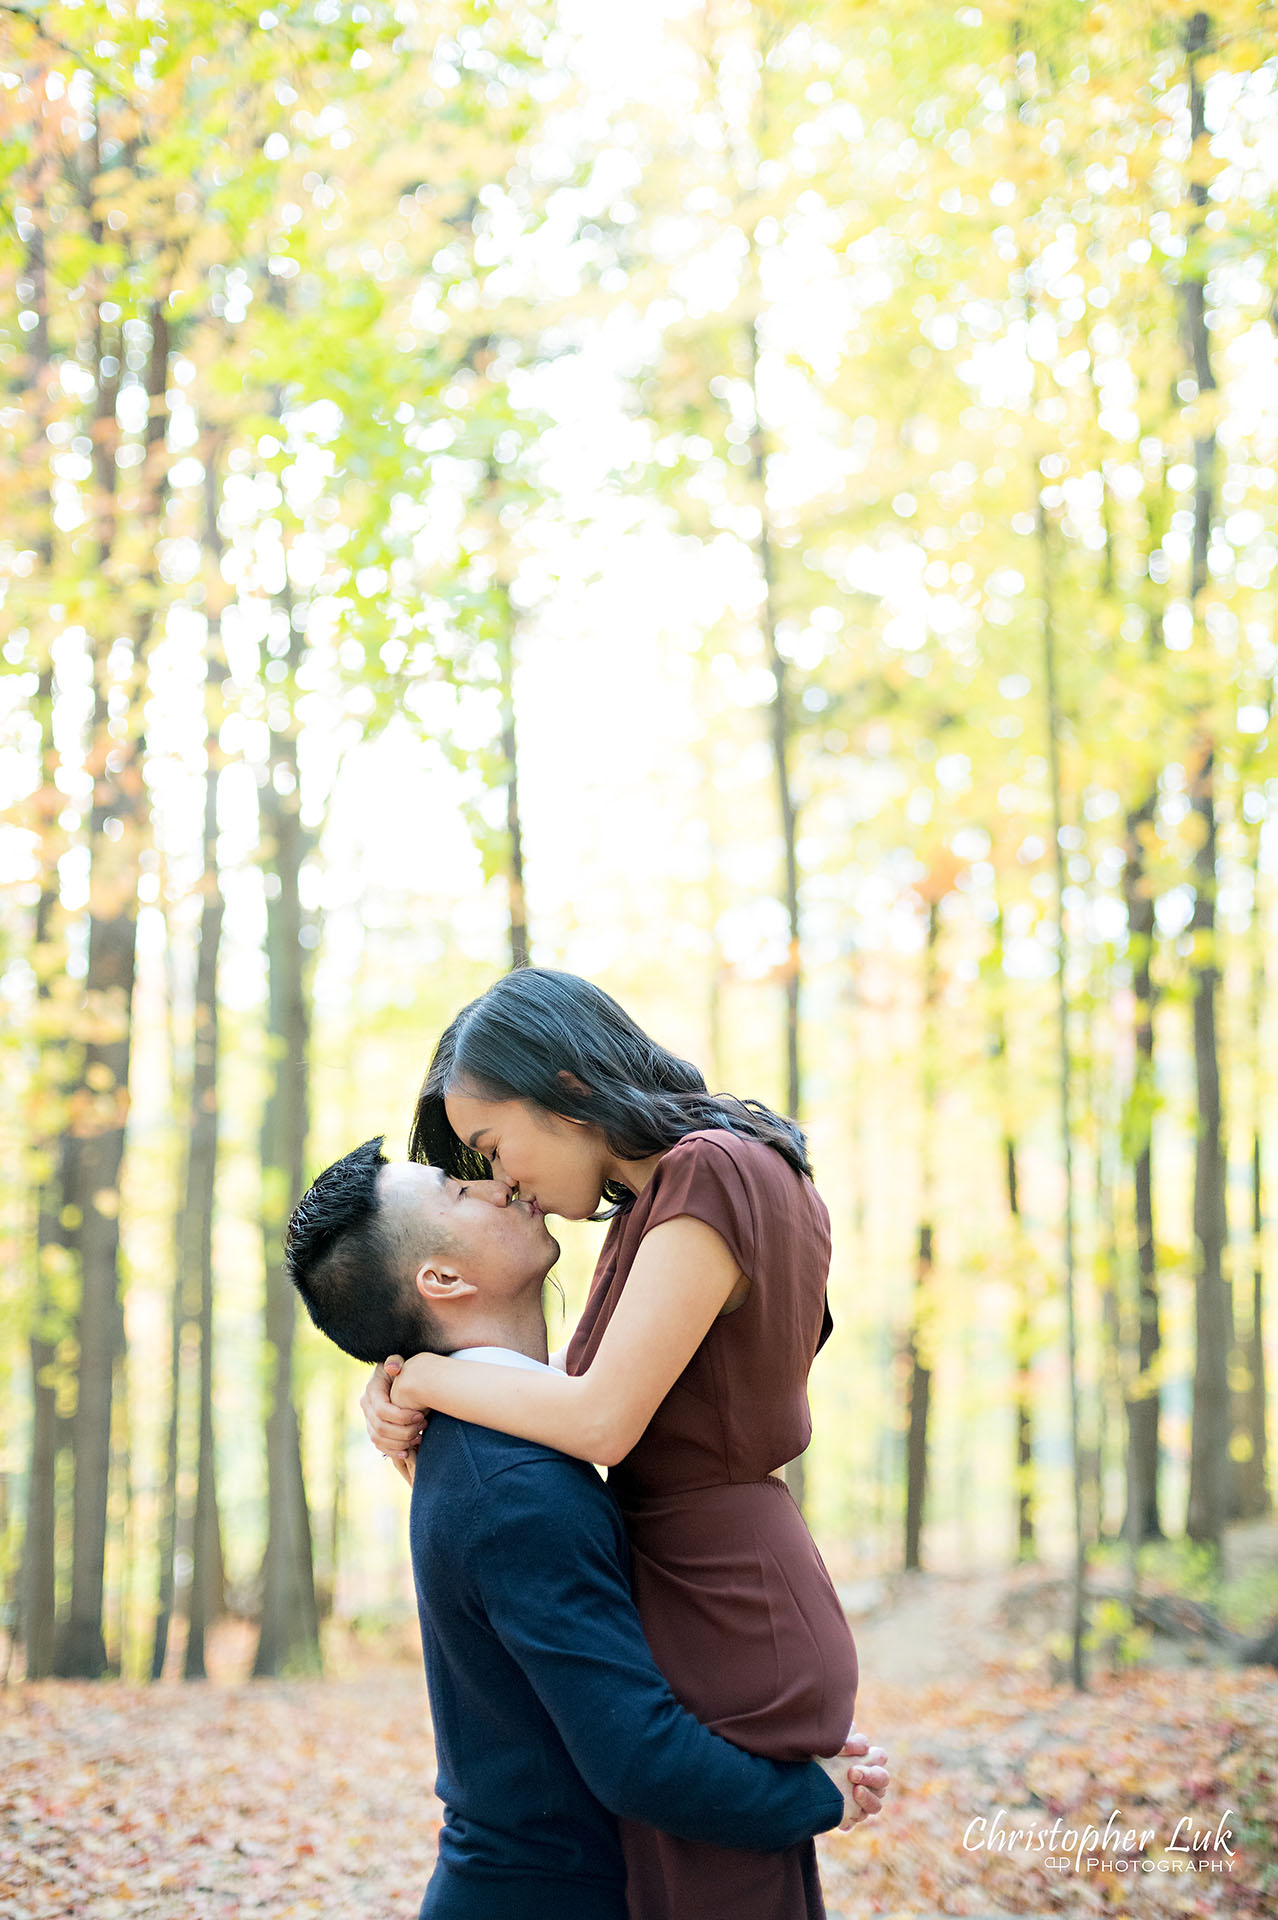 Christopher Luk Toronto Wedding Engagement Session Photographer Autumn Fall Leaves Natural Candid Photojournalistic Bride Groom Hiking Trail Trees Lift Hug Carry Kiss Each Other